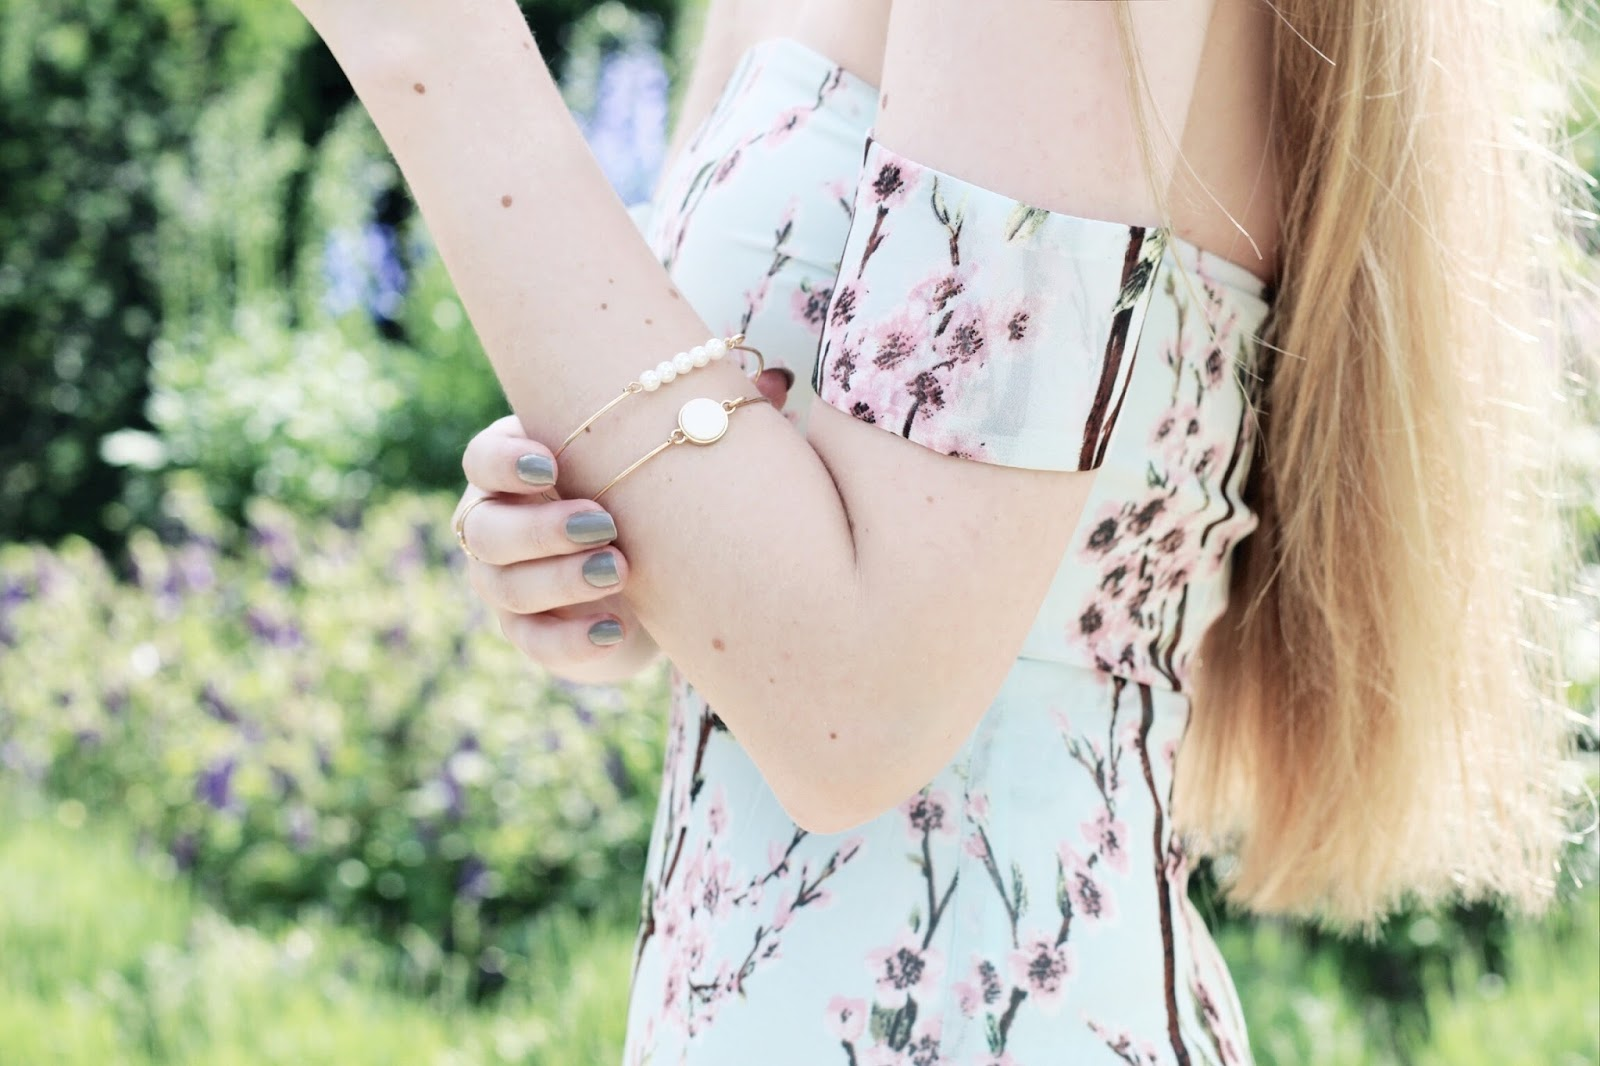 Pretty dainty jewellery from Boohoo